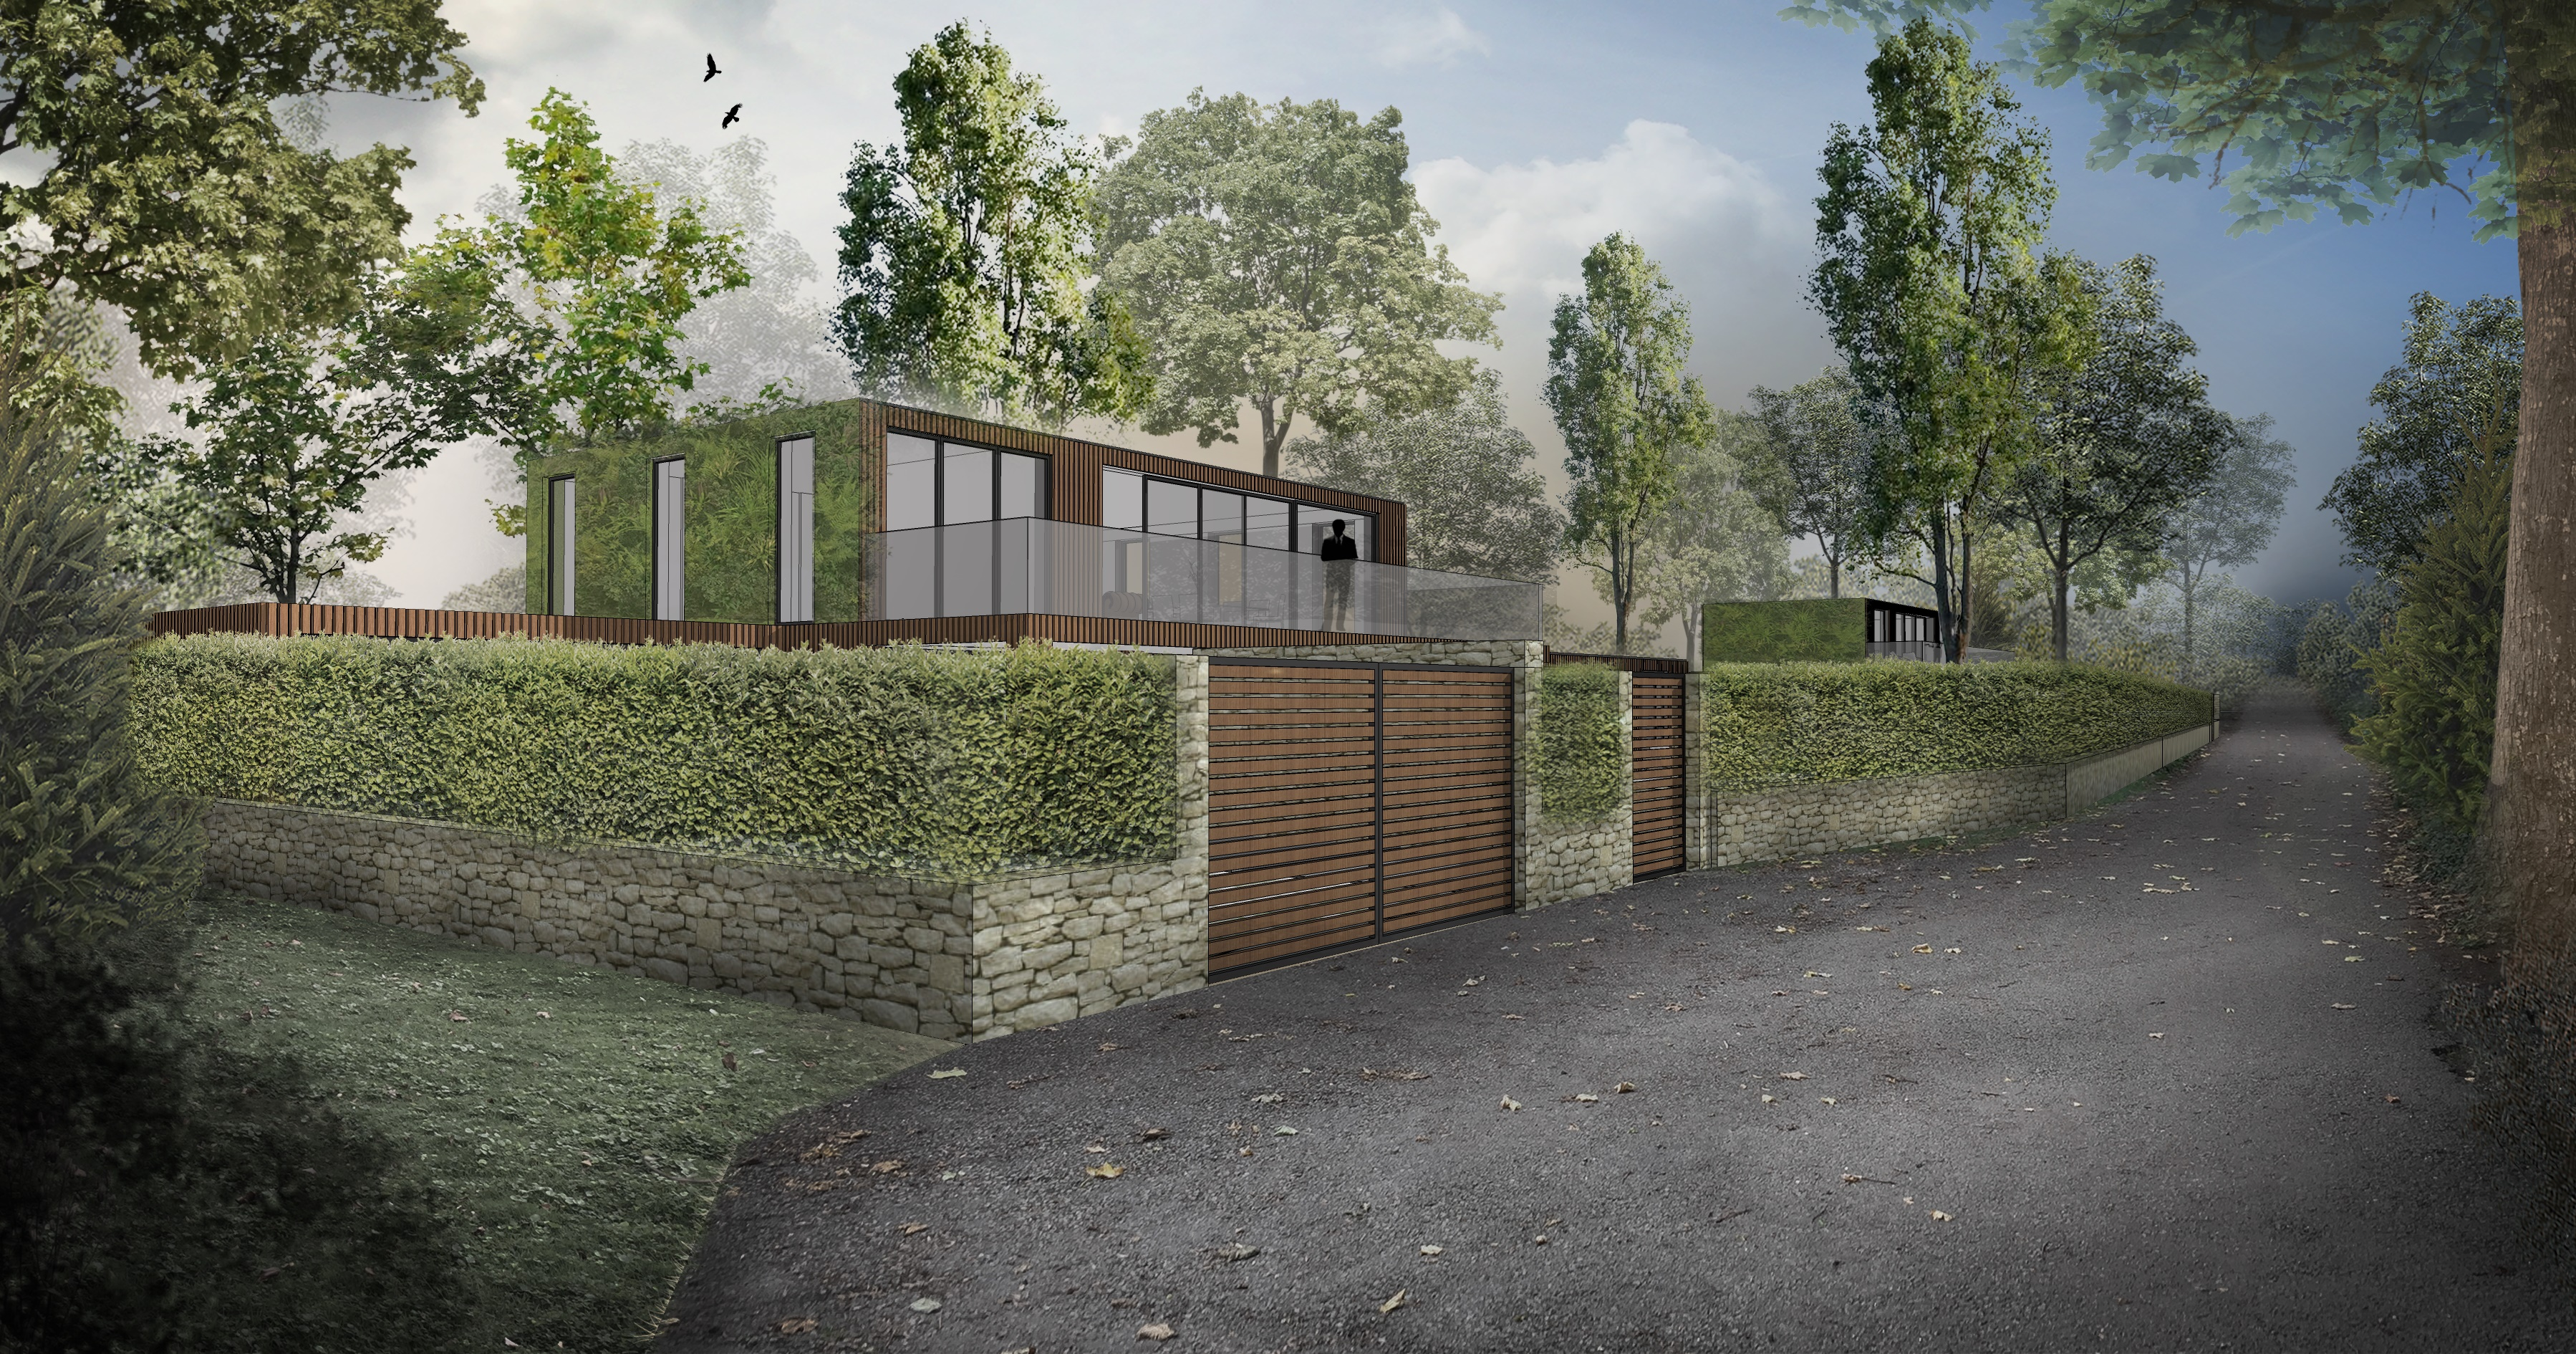 </p> <p>Find your ideal home design pro on designfor-me.com - get matched and see who's interested in your home project. Click image to see more inspiration from our design pros</p> <p>Design by James, architect from South Bucks, South East</p> <p>#architecture #homedesign #modernhomes #homeinspiration #timbercladding #selfbuilds #selfbuildinspiration #selfbuildideas #granddesigns #roofgarden #roofterrace </p> <p>